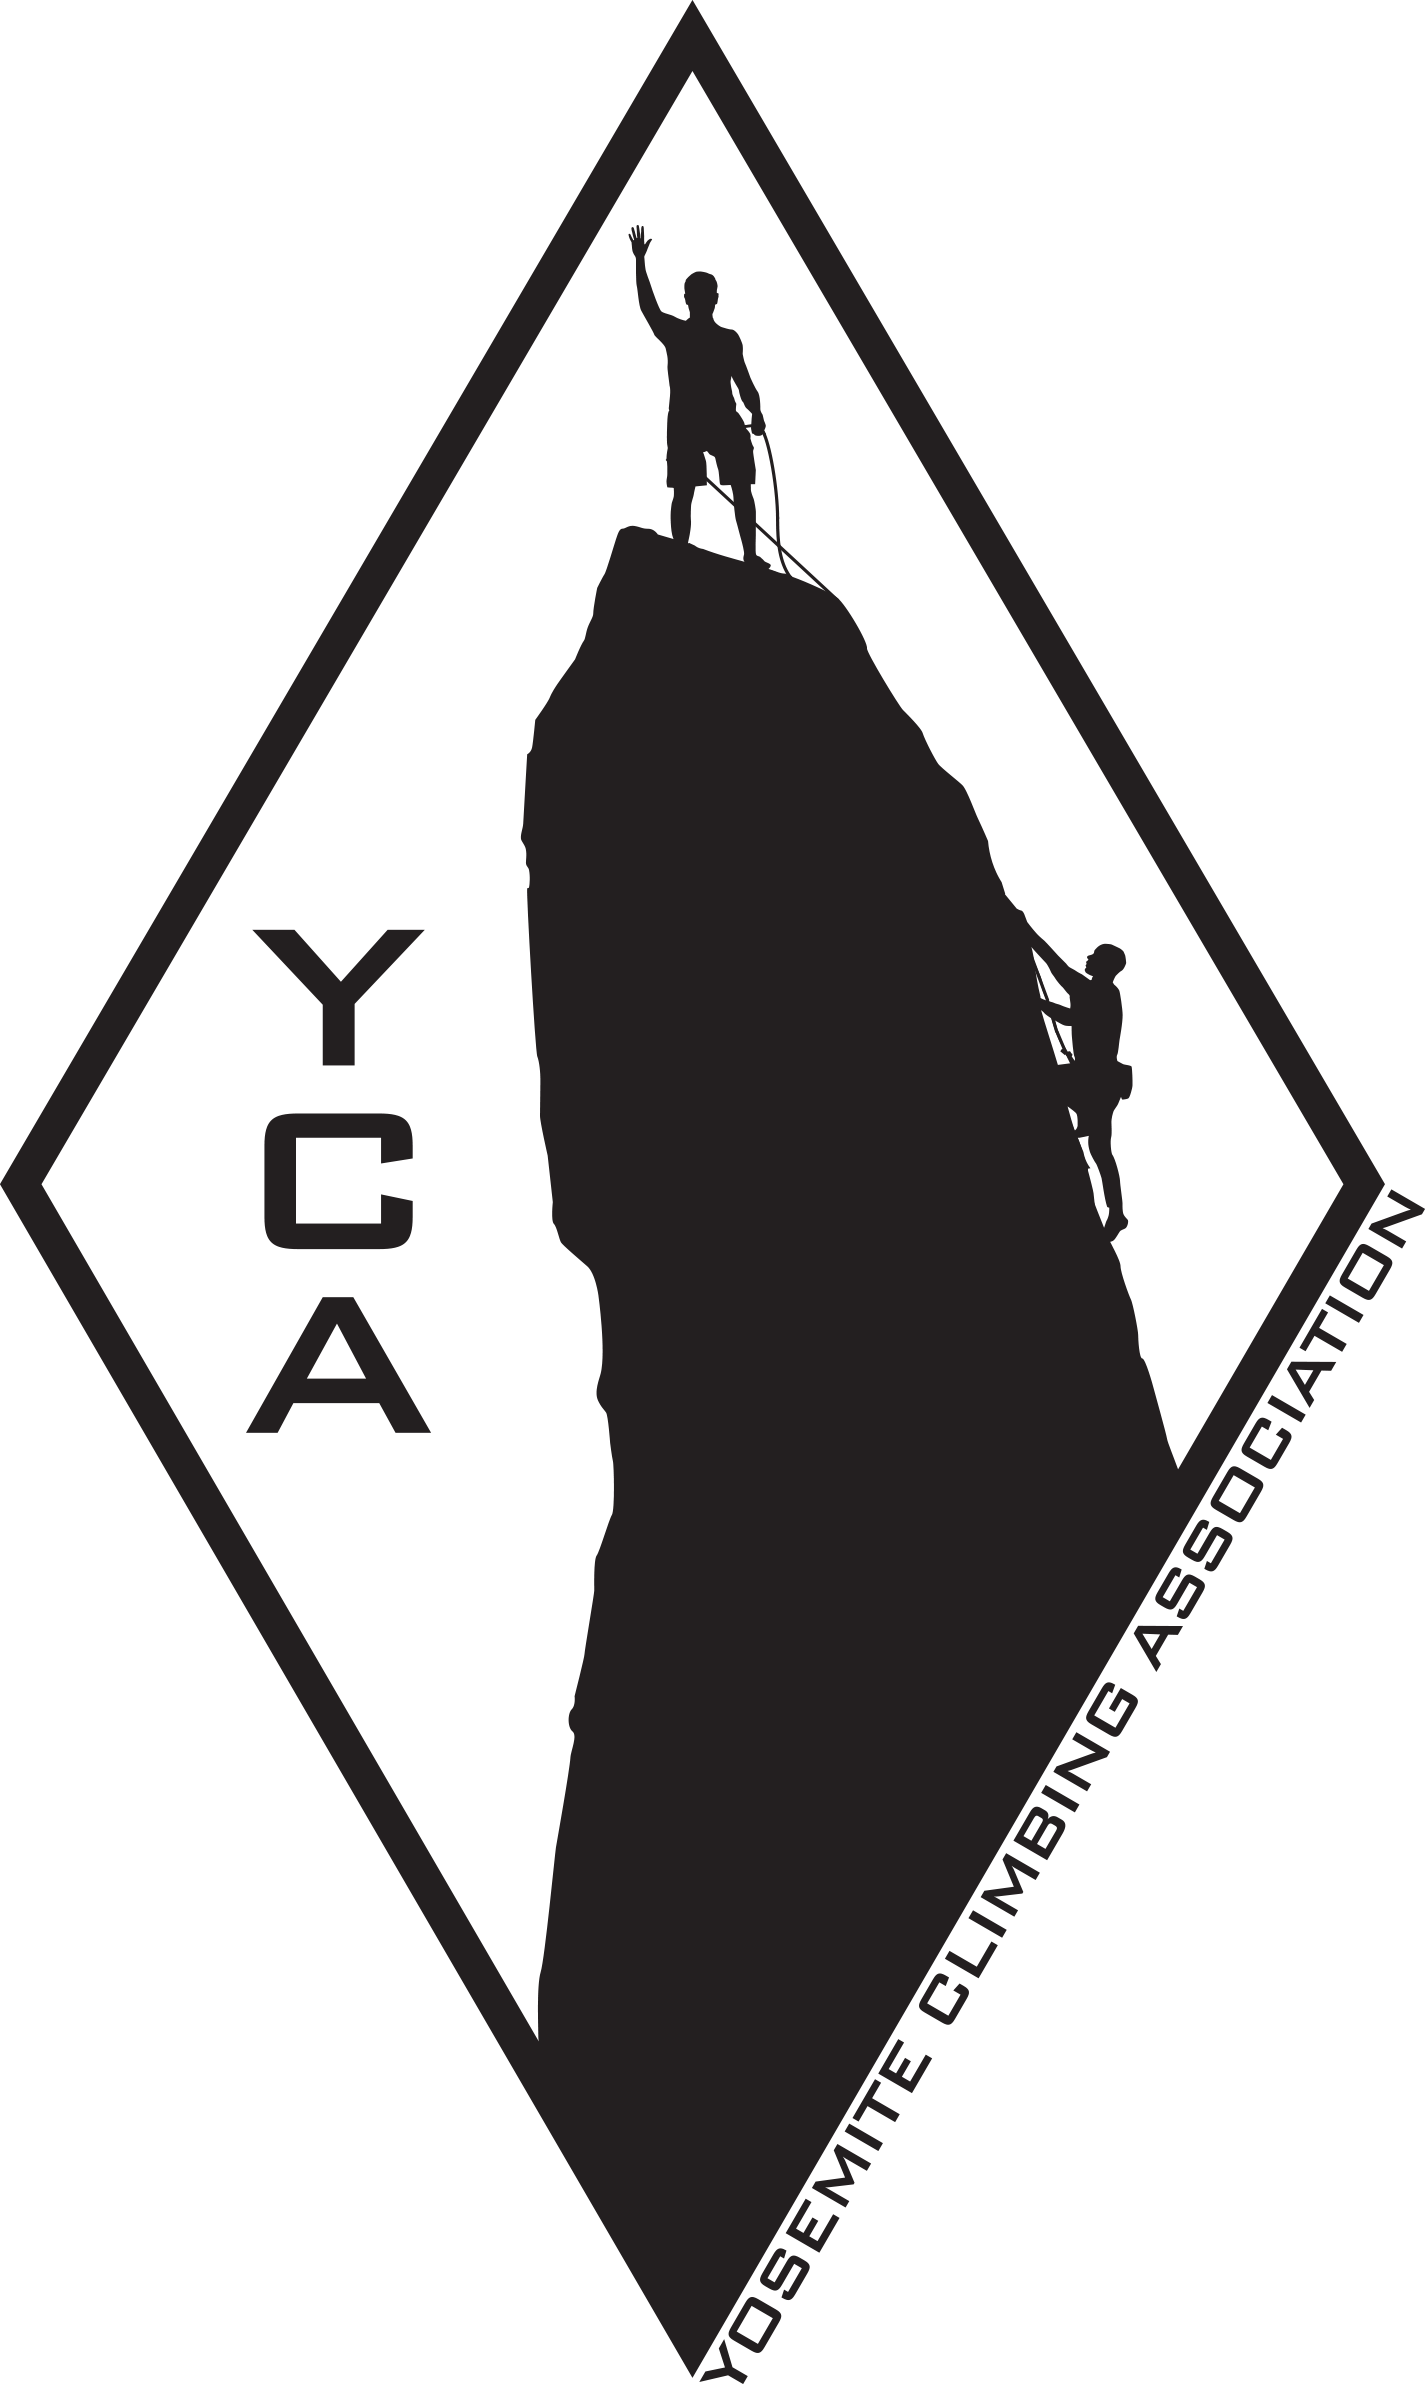 Yosemite Climbing Association - Yosemite PNG